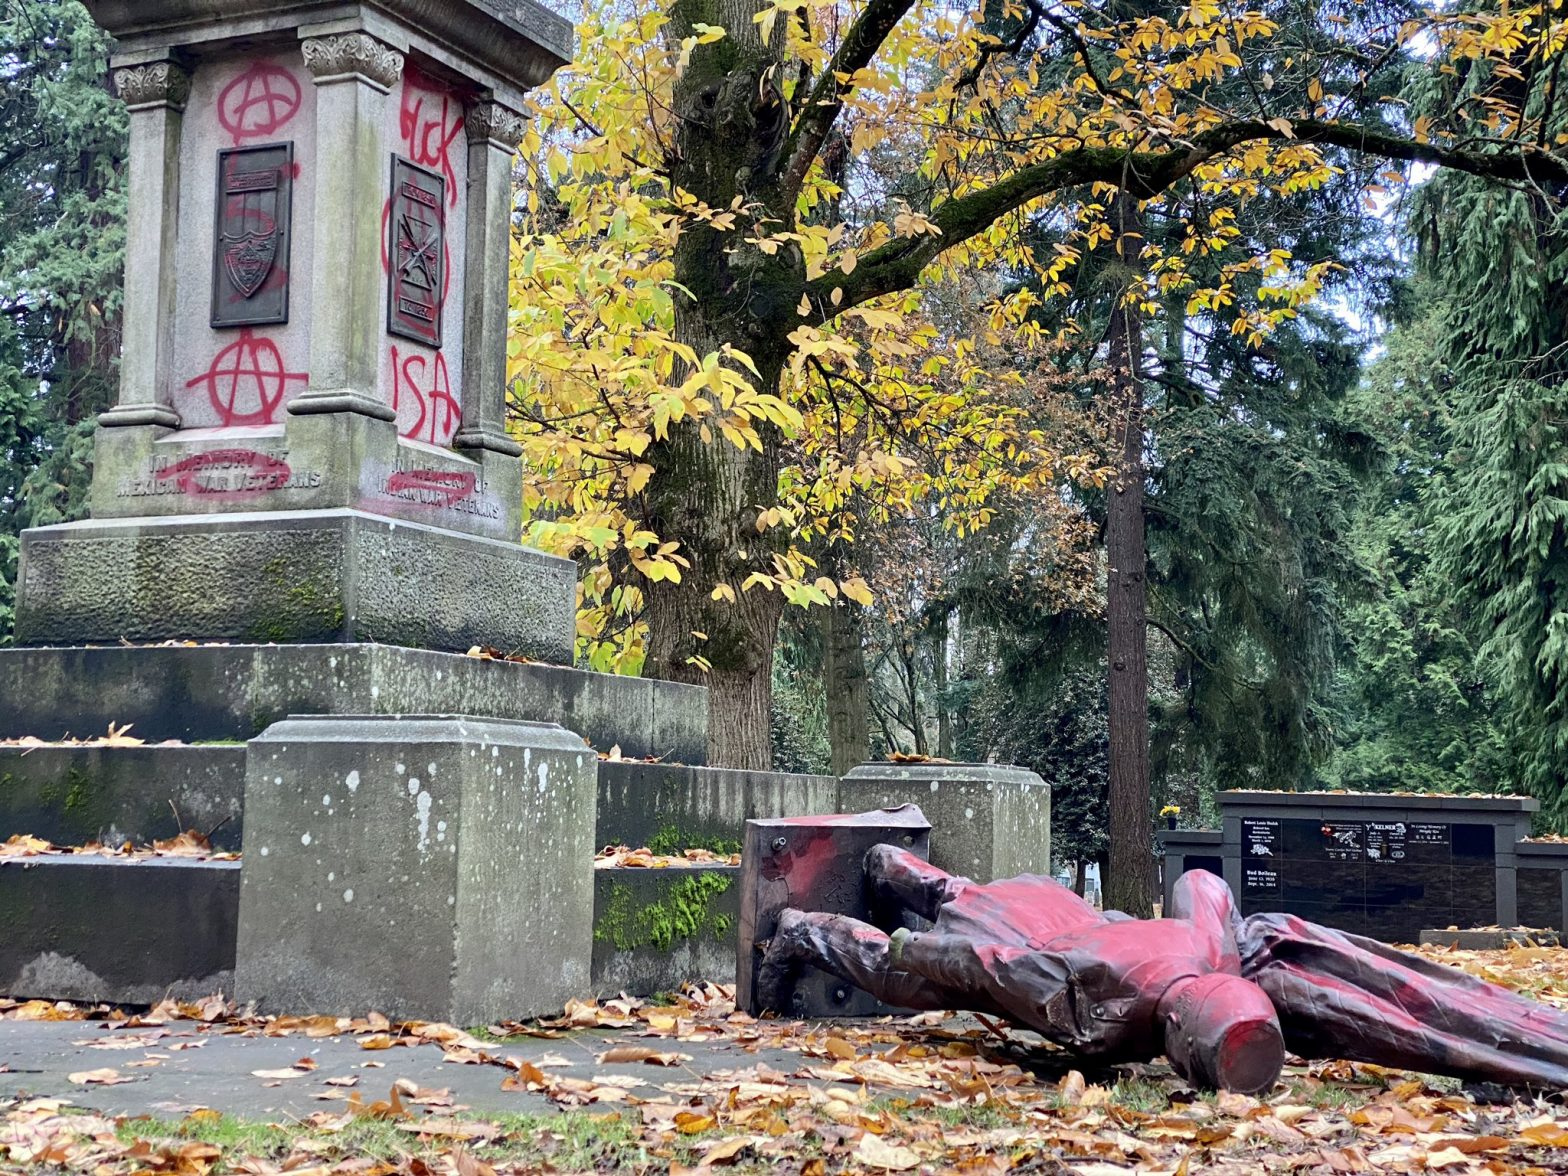 Colonizer statue toppled and covered with red paint